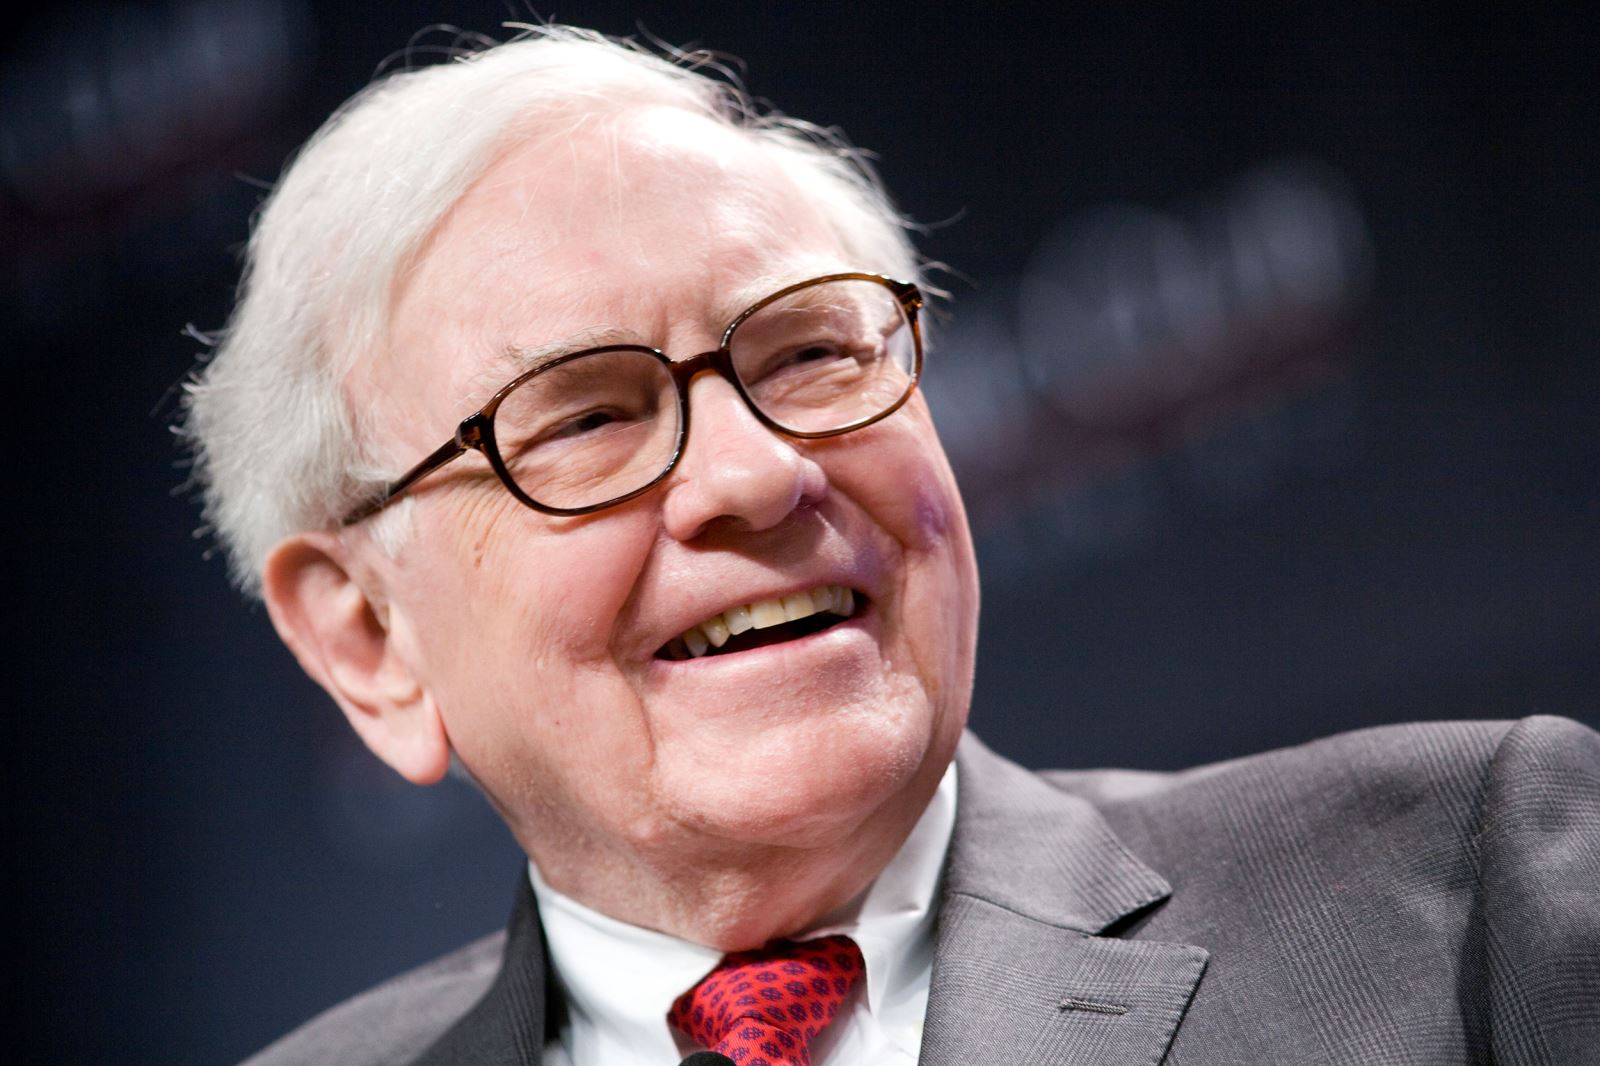 Warren Buffett criticizes Keystone XL delay